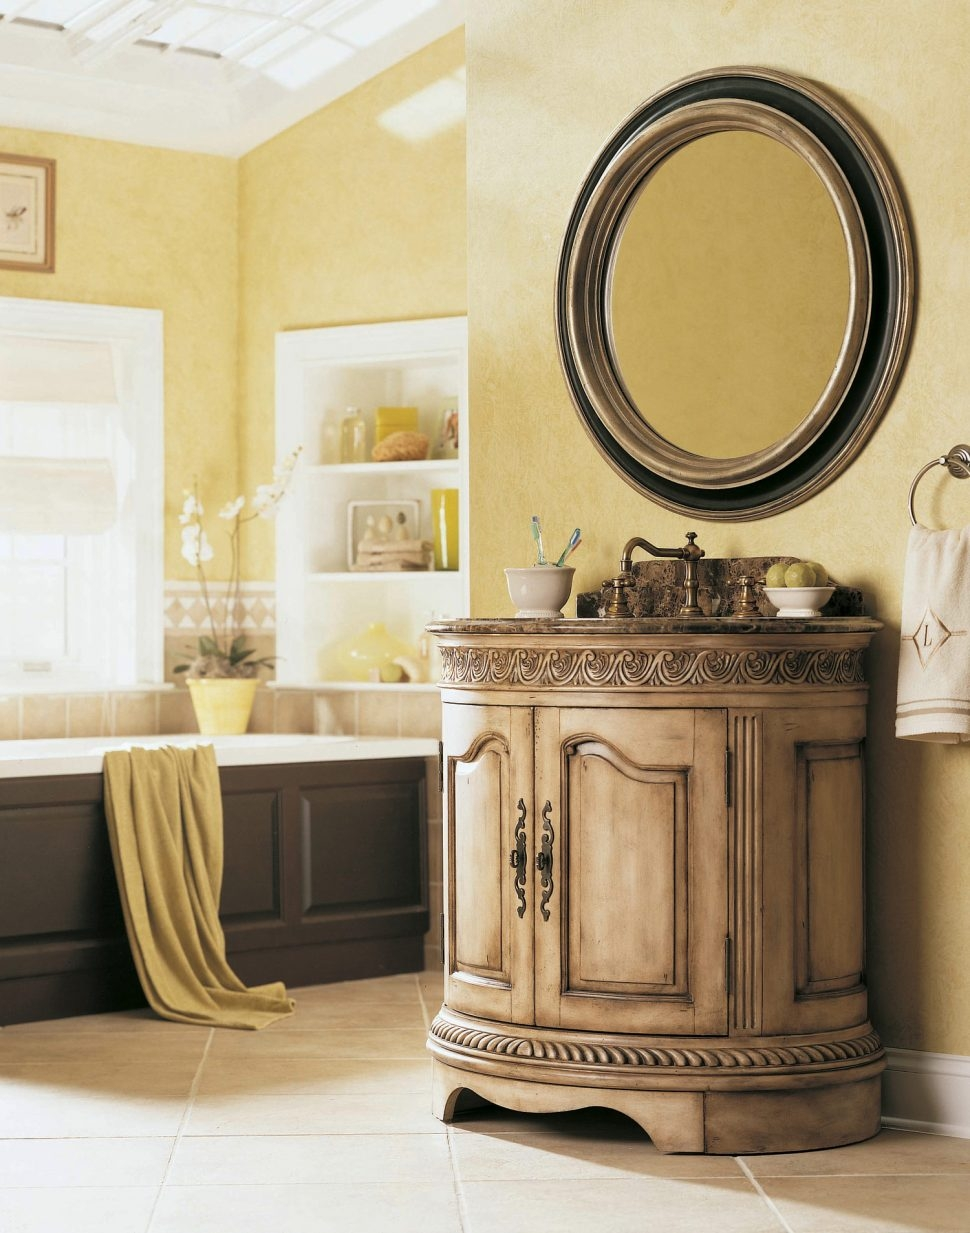 Bathroom Design Hooker Bathroom Furniture Pictures Shab Chic Pertaining To Shabby Chic Round Mirror (View 3 of 15)